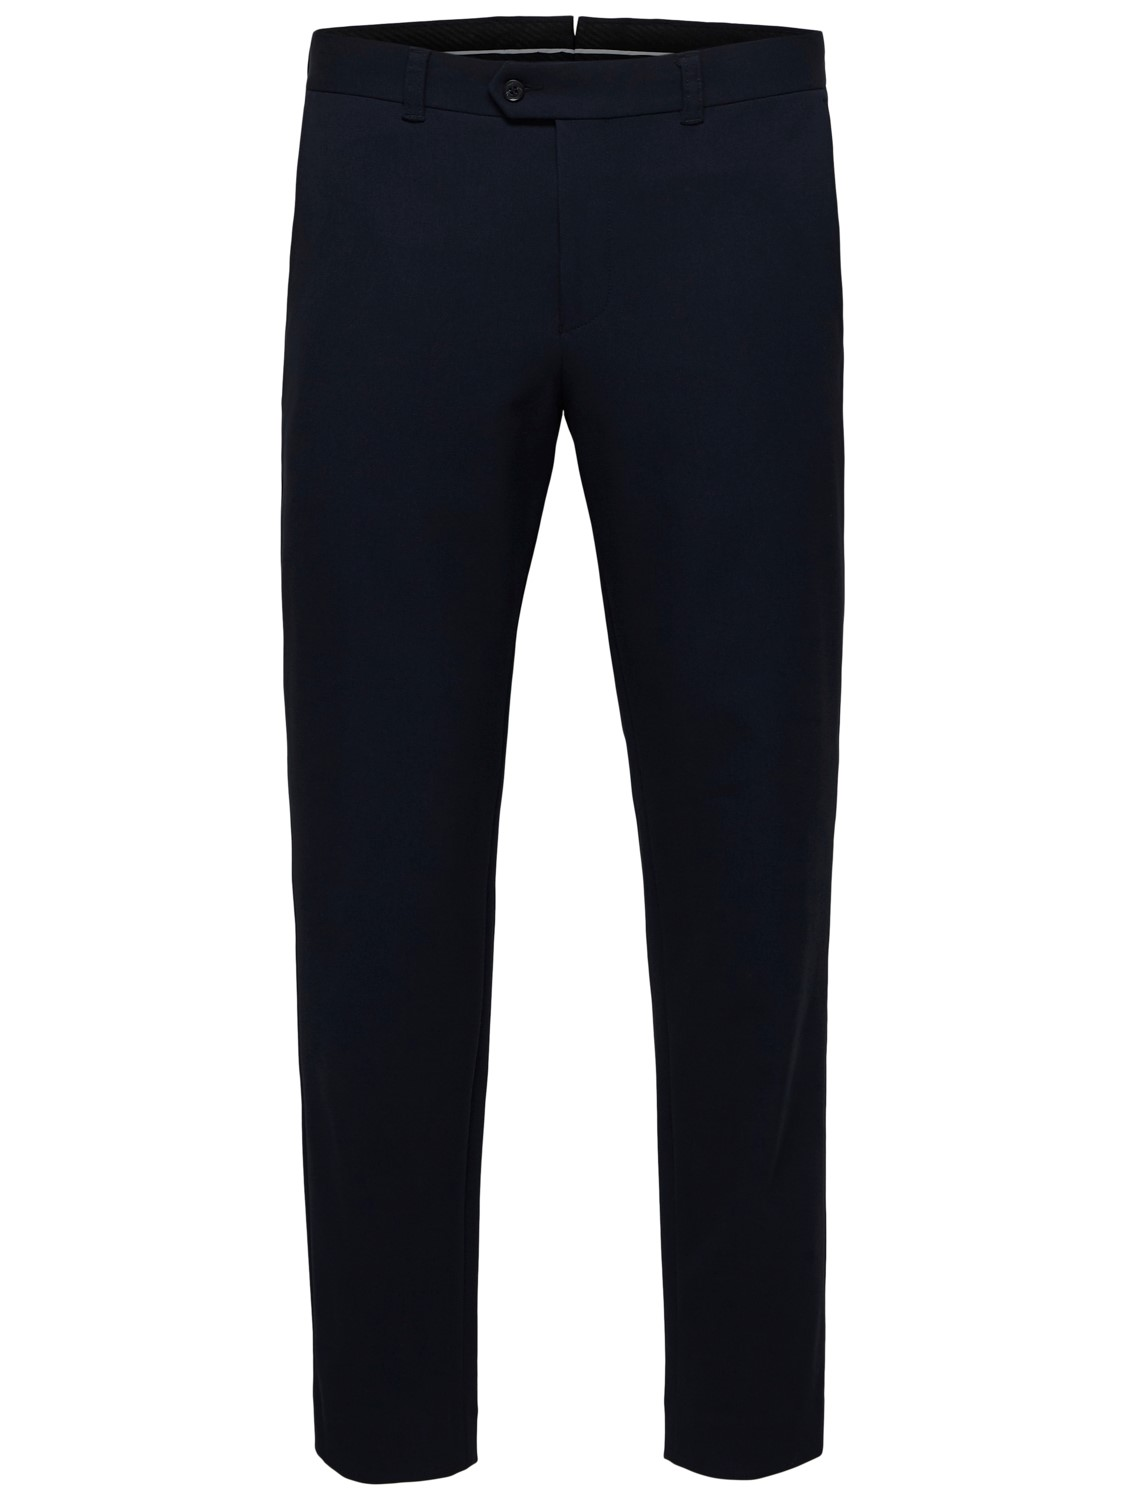 SELECTED Slimfit Bukser Navy | GATE36 Hobro